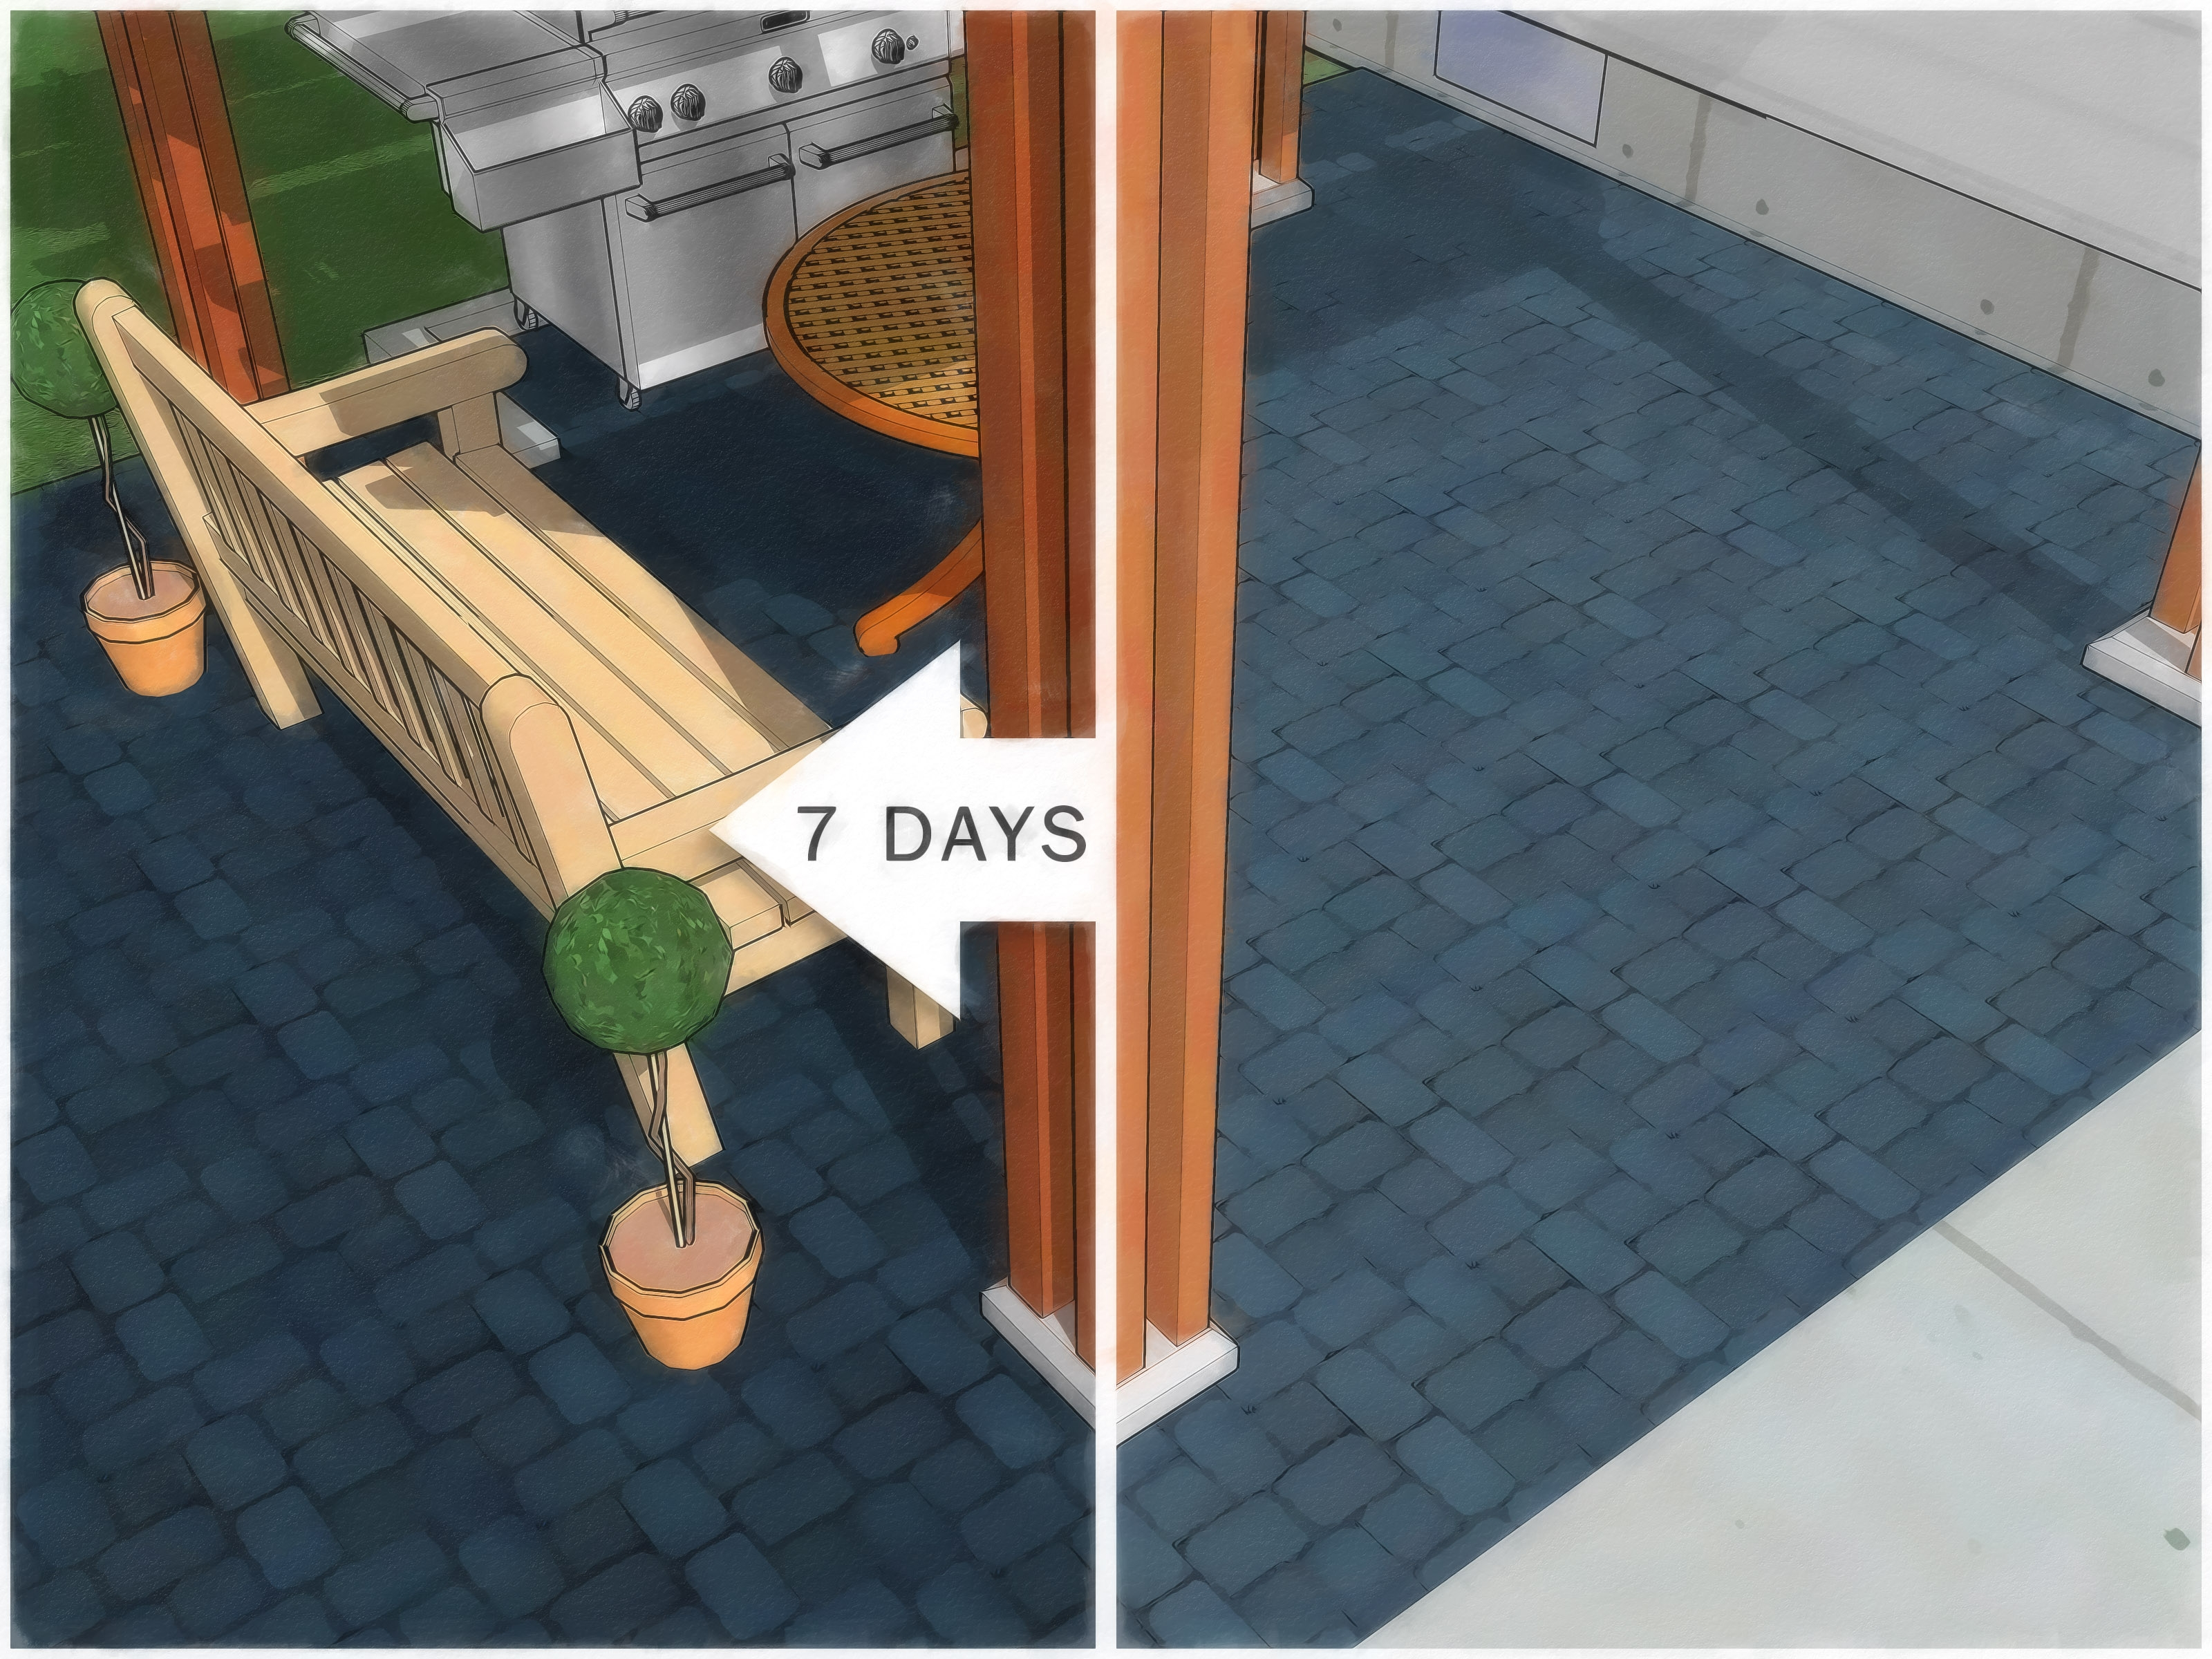 How To Paint An Outdoor Concrete Patio With Pictures | Painting Outside Concrete Steps